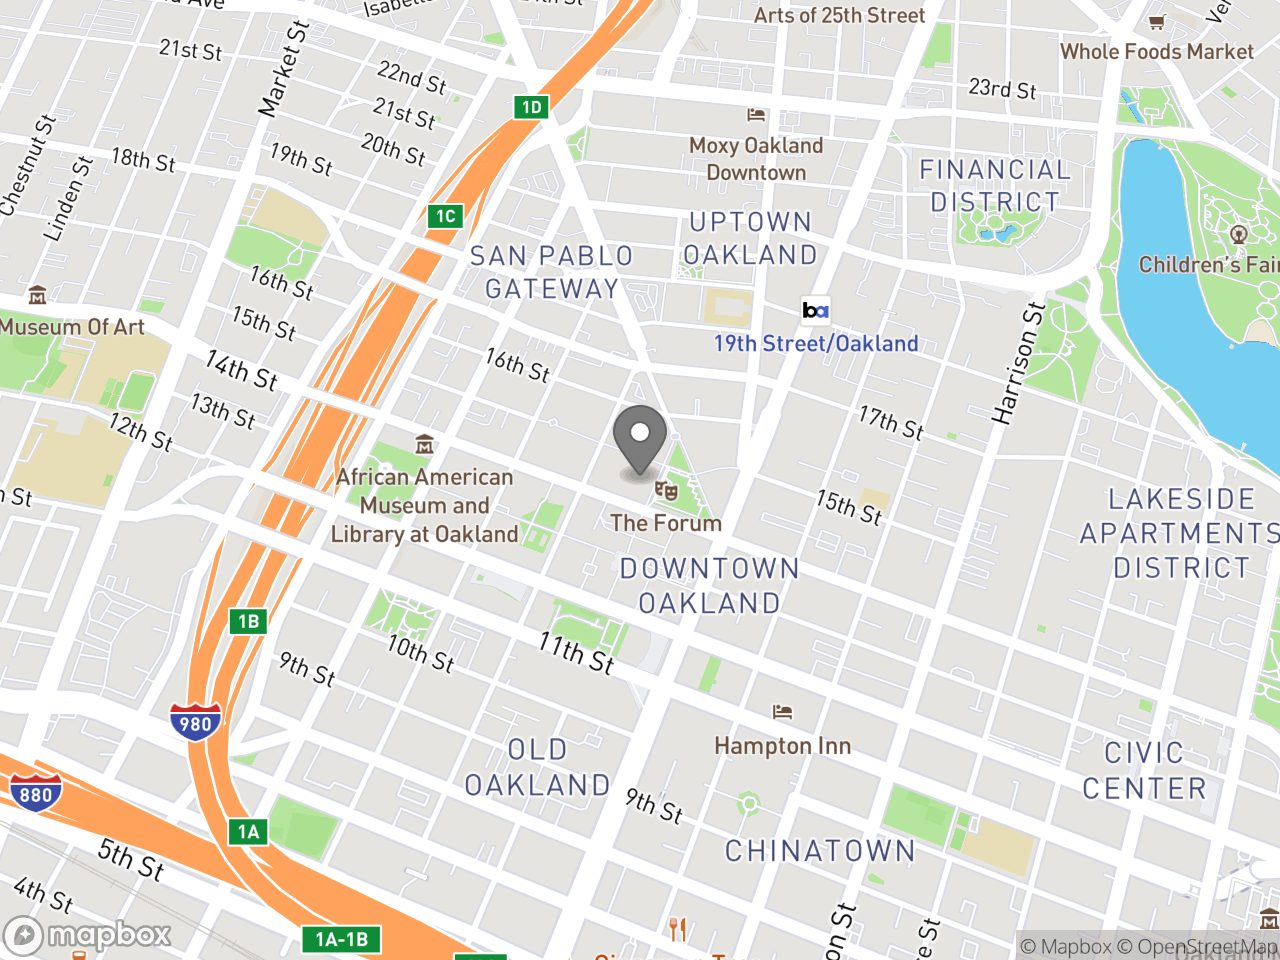 Map location for Rent Board Regular Meeting January 24, 2019, located at 1 Frank H Ogawa Plaza in Oakland, CA 94612